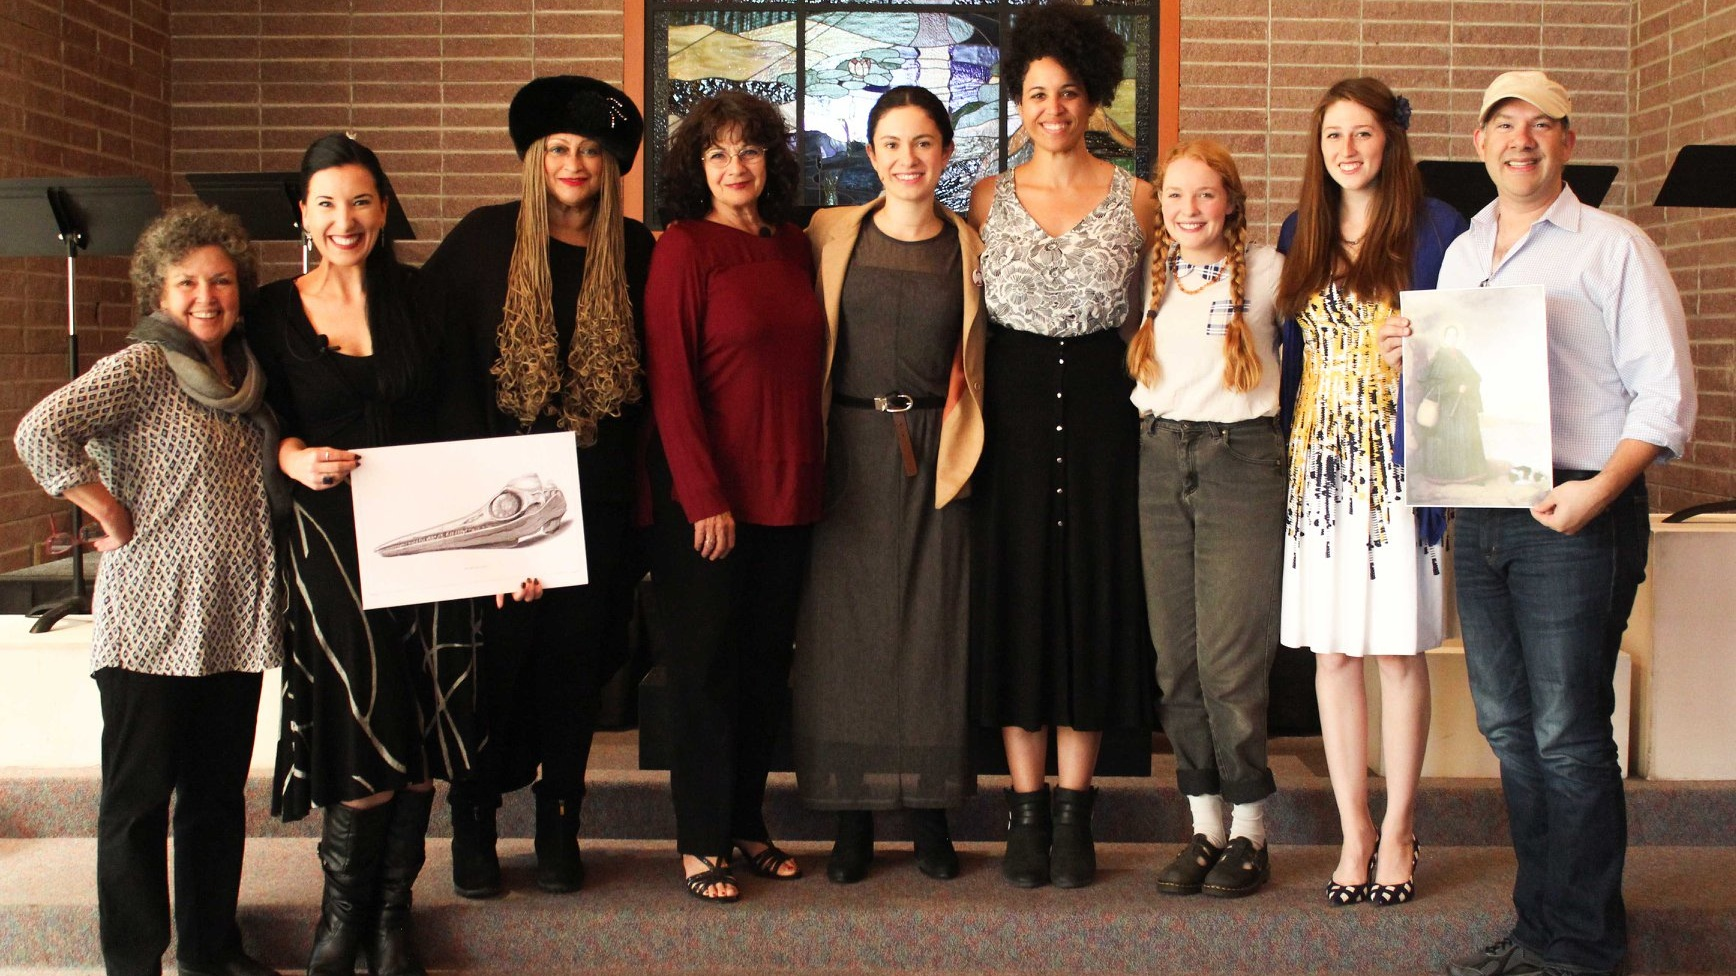 The playwright with the creative team from the Ashland New Plays Festival reading of The Excavation of Mary Anning. From left to right: Director Penny Metropulous, Shannon Davis, Michele (Maisy) Mais, Livia Genese, Alejandra Escalante, Jennie Greenberry, Meghan Nealon, and Stage Direction reader Marie-Claire Erdynast. Photo by Kara Quinn.